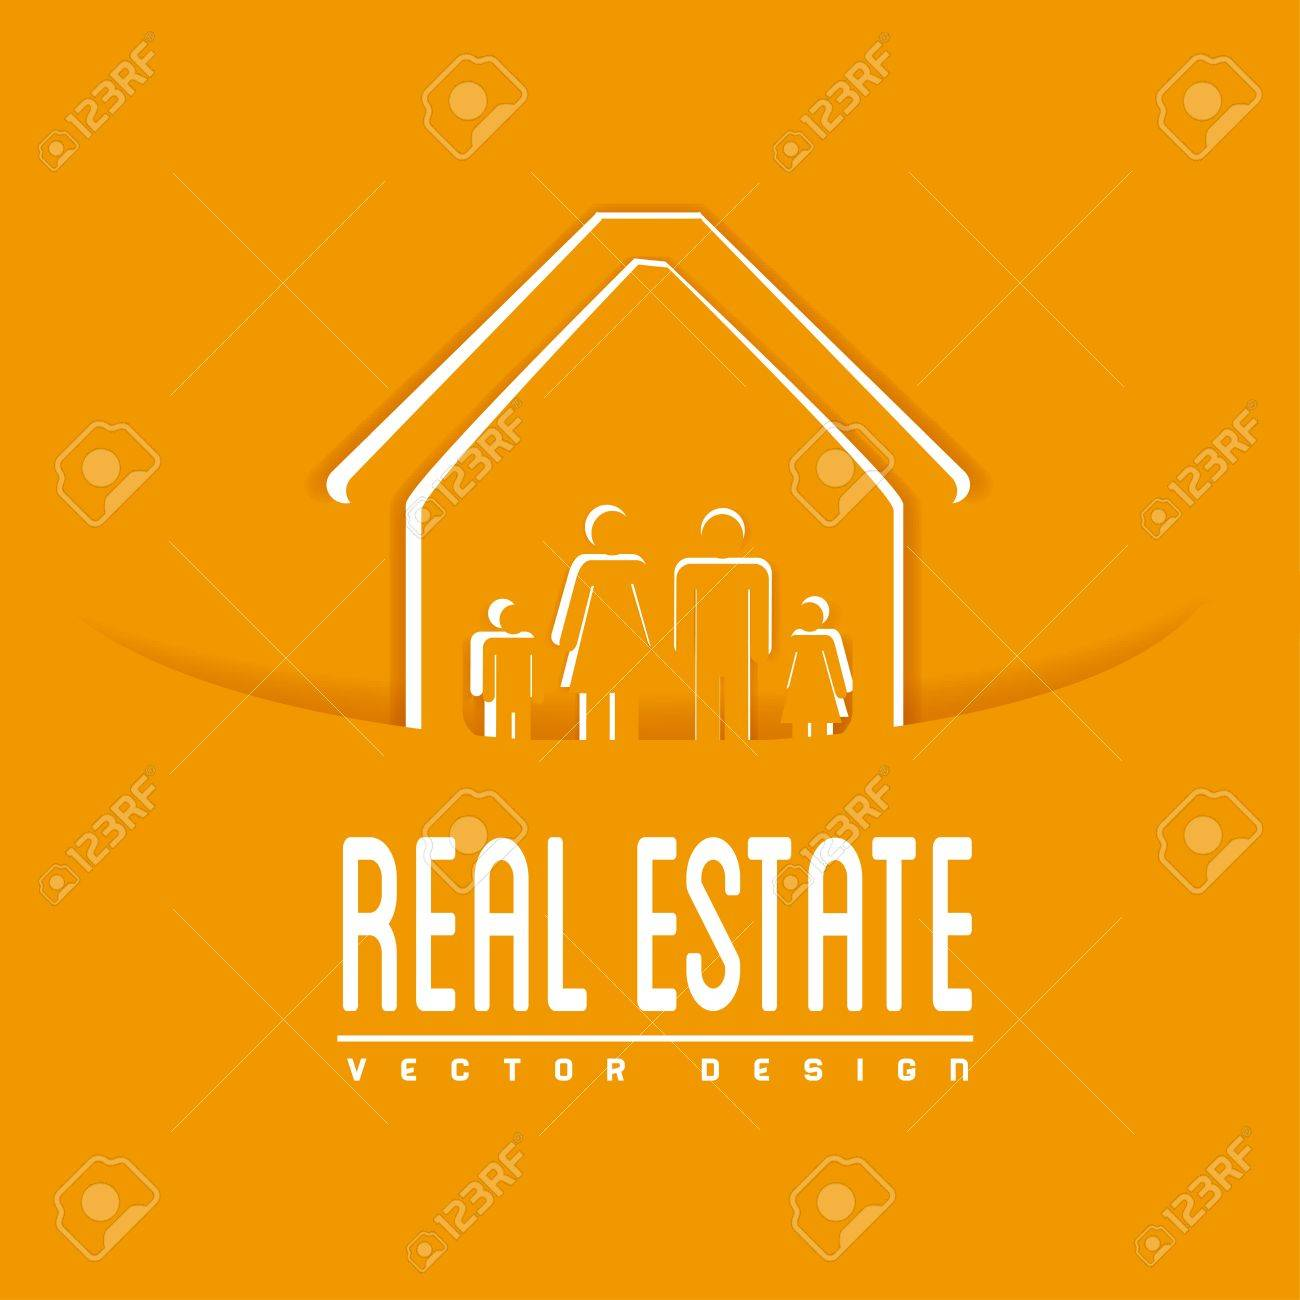 real estate design over orange background vector illustration Stock Vector - 20500374